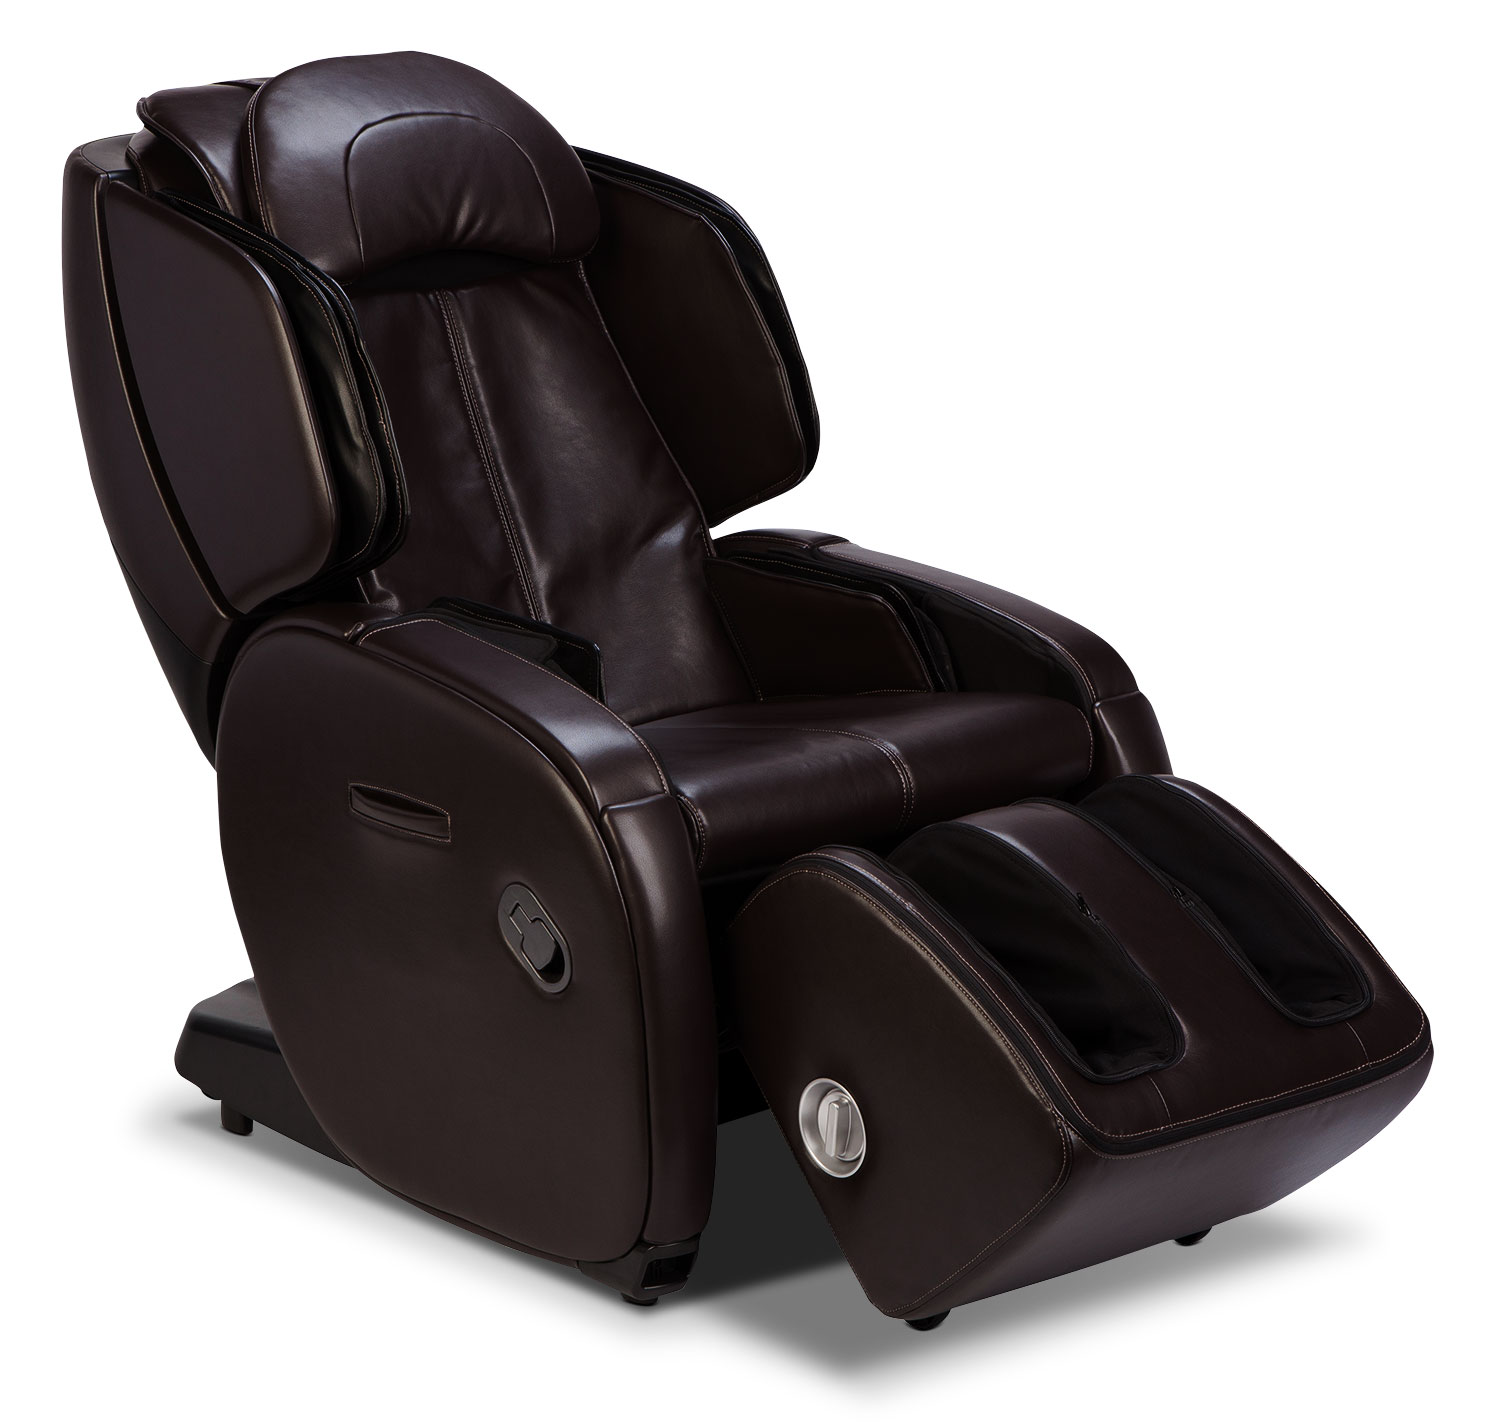 Fauteuil de massage d'auto-immersion AcuTouch(MD) 6.0 Human Touch(MD)